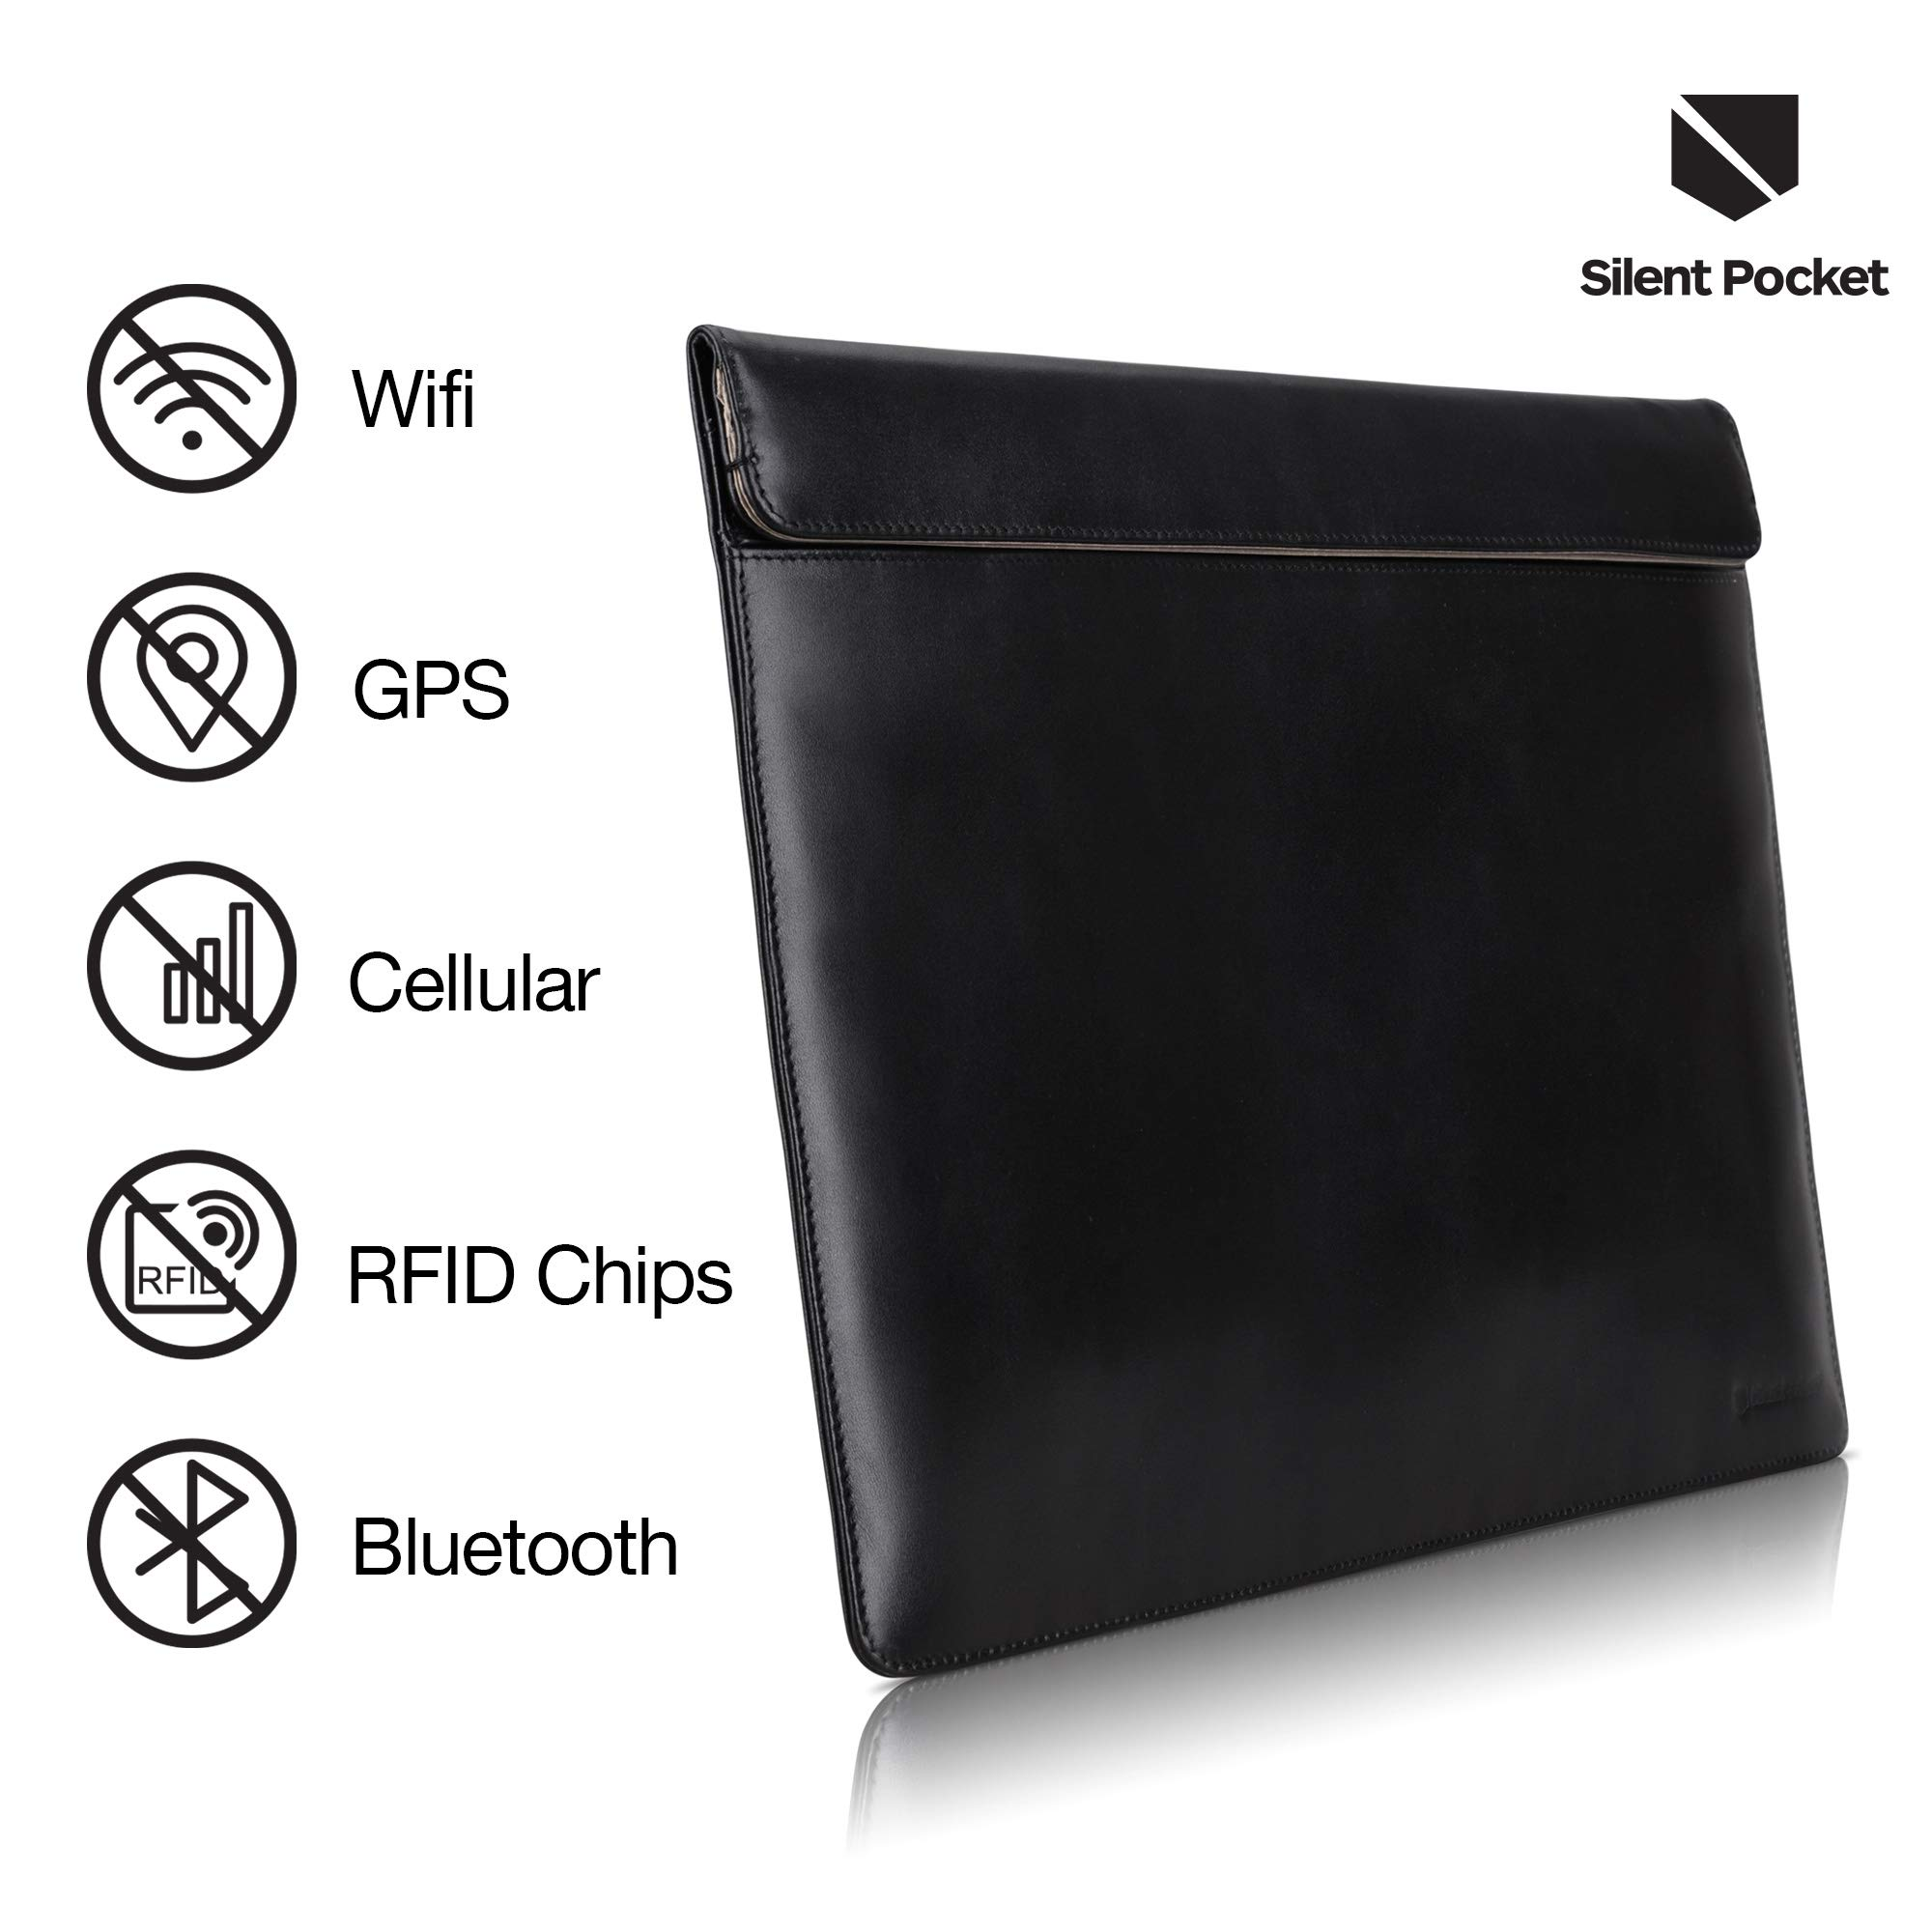 Silent Pocket Waterproof Nylon Faraday Bag, Signal Blocking Device Sleeve for 13 inch and 15 inch Laptops and Tablets - Instant Protection (13 inch, Black Leather)